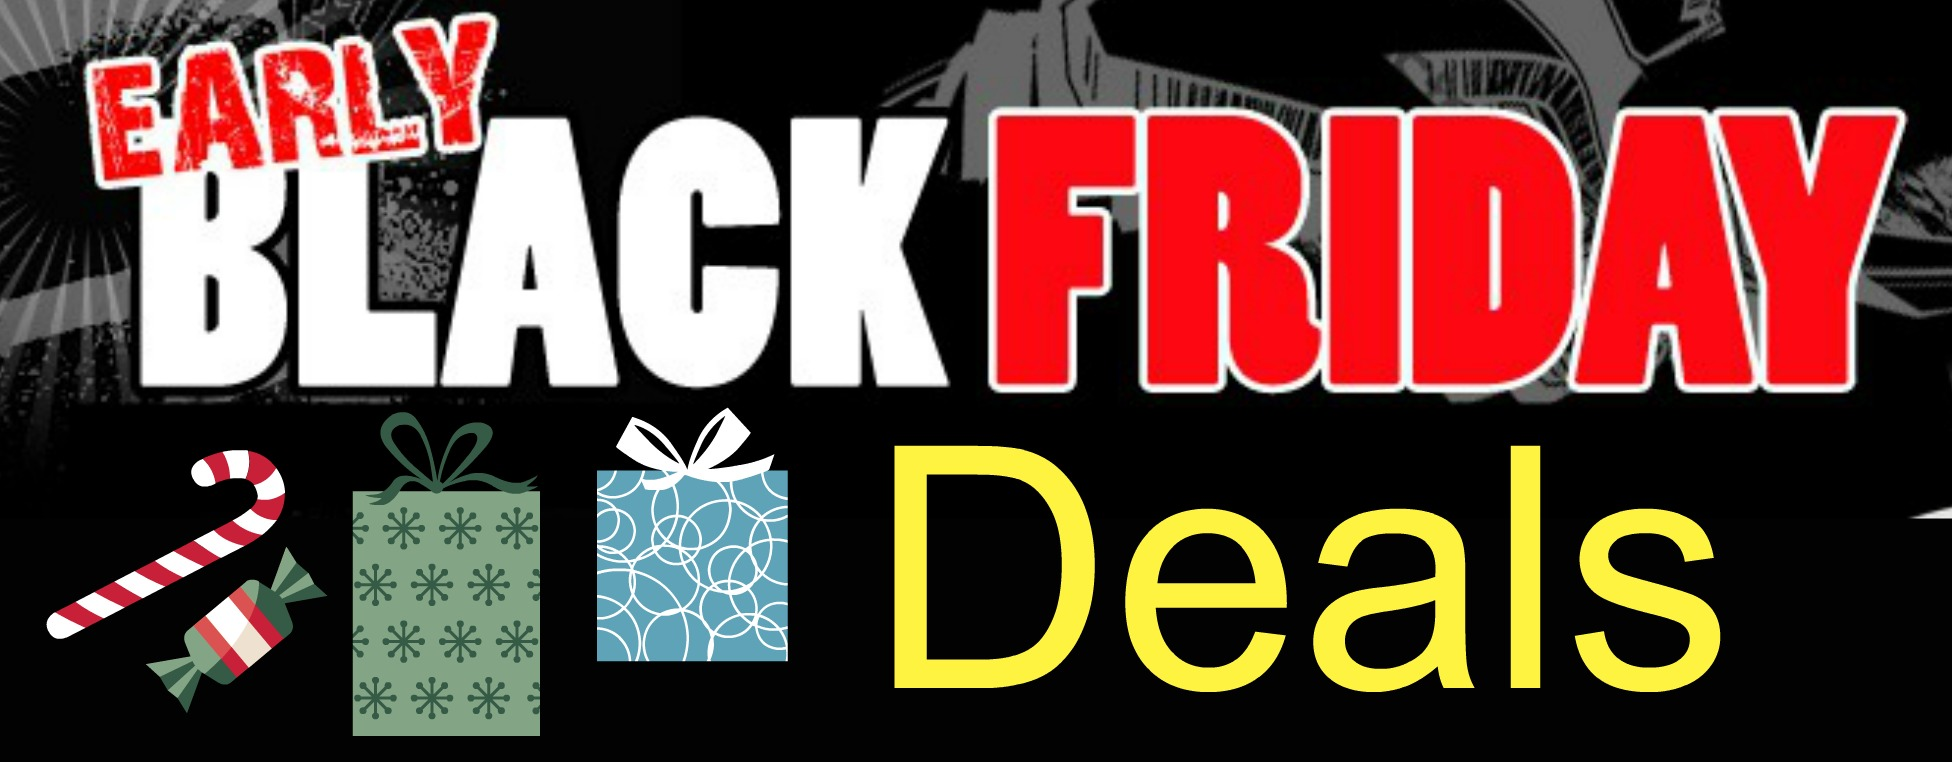 black deals friday now